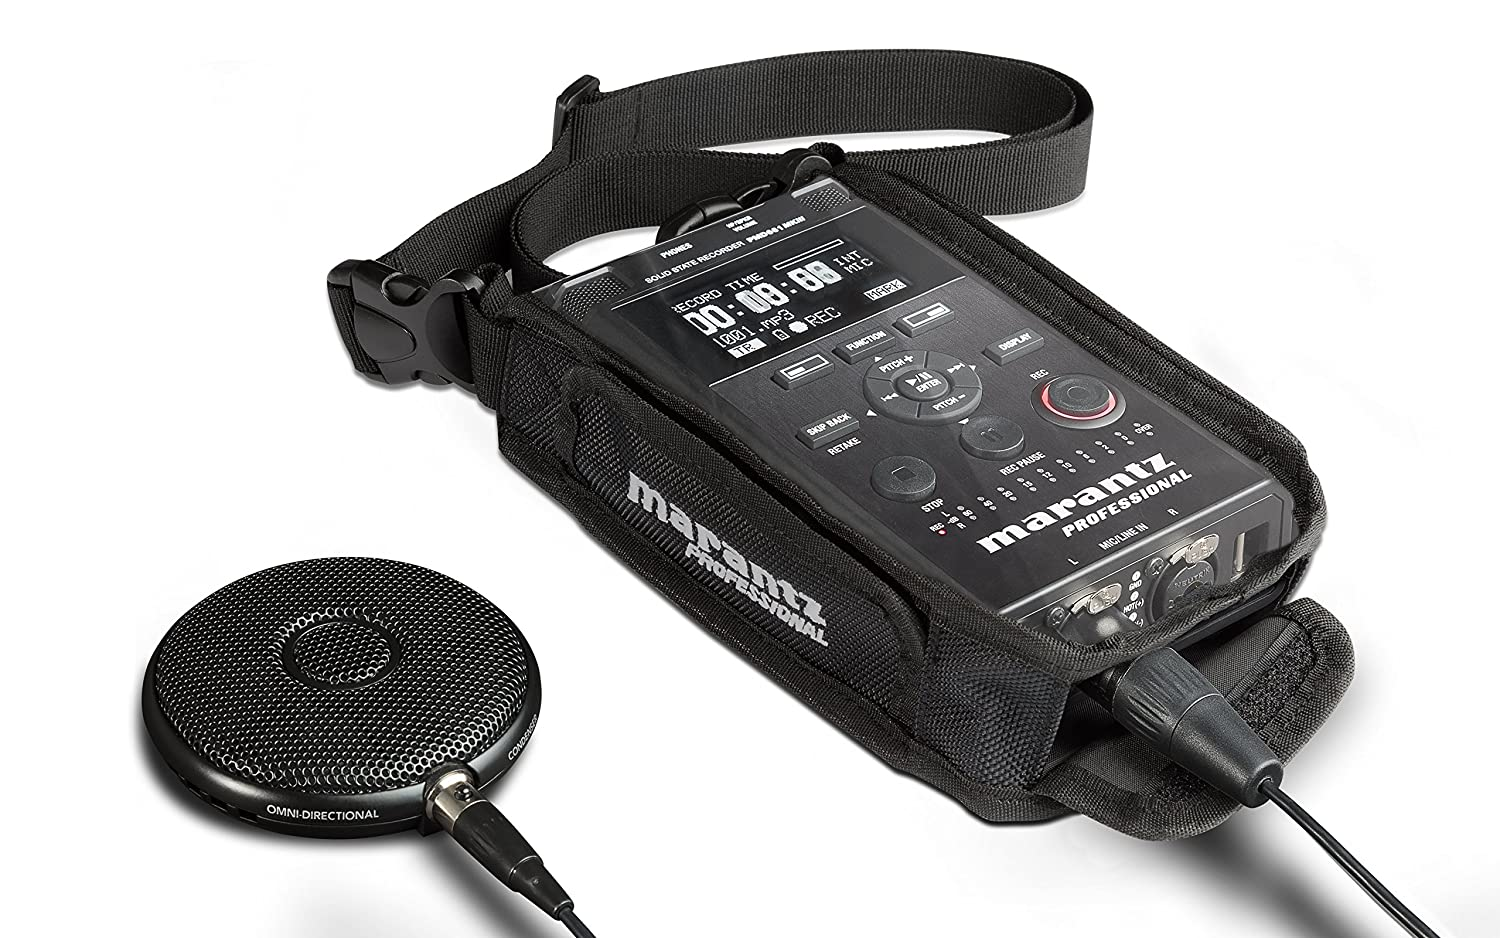 Marantz Professional PMD661MKIII   Handheld Solid State Field Recorder with On-Board File Encryption, Studio-Grade Recording Resolutions and Microphone Included 711l2gxUwfL._SL1500_